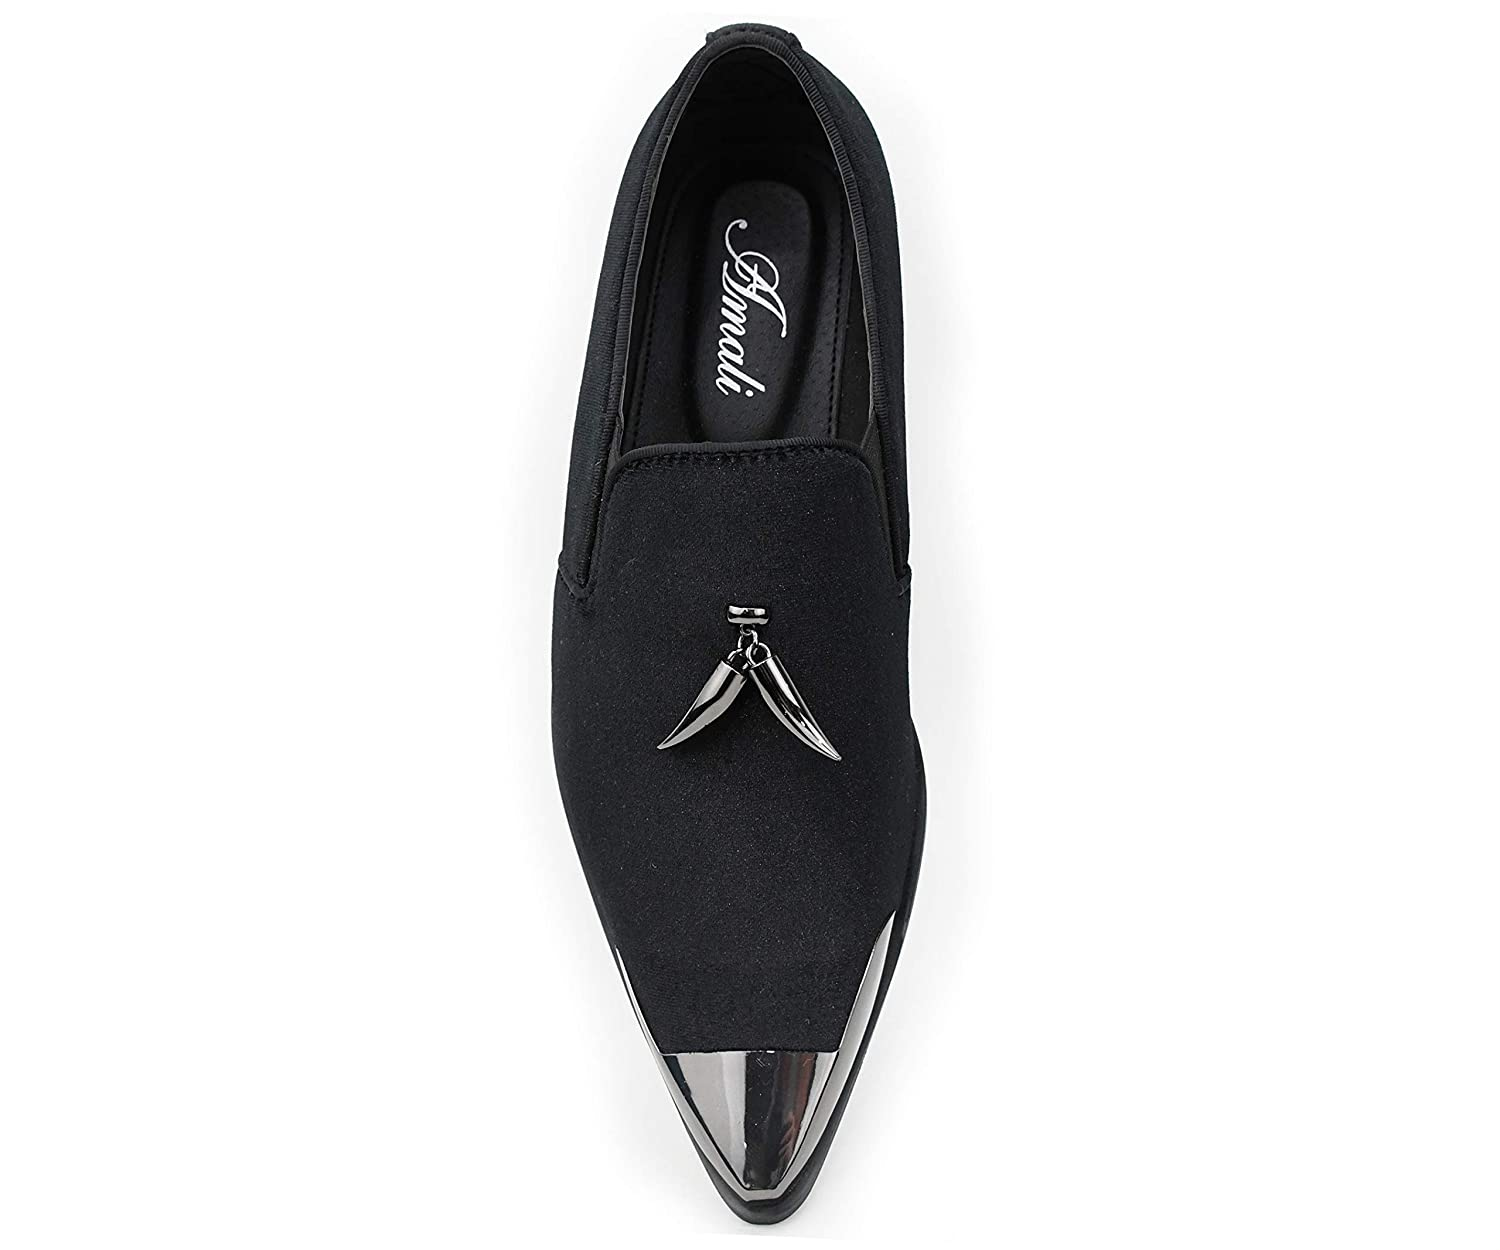 Amali Mens Metal Tip Loafer Slip-On Dress Velvet Shoe with A Dark Metal Silver Tip and Matching Sterling Metallic Horn Shaped Tassel Style Corwin Smoking Slipper